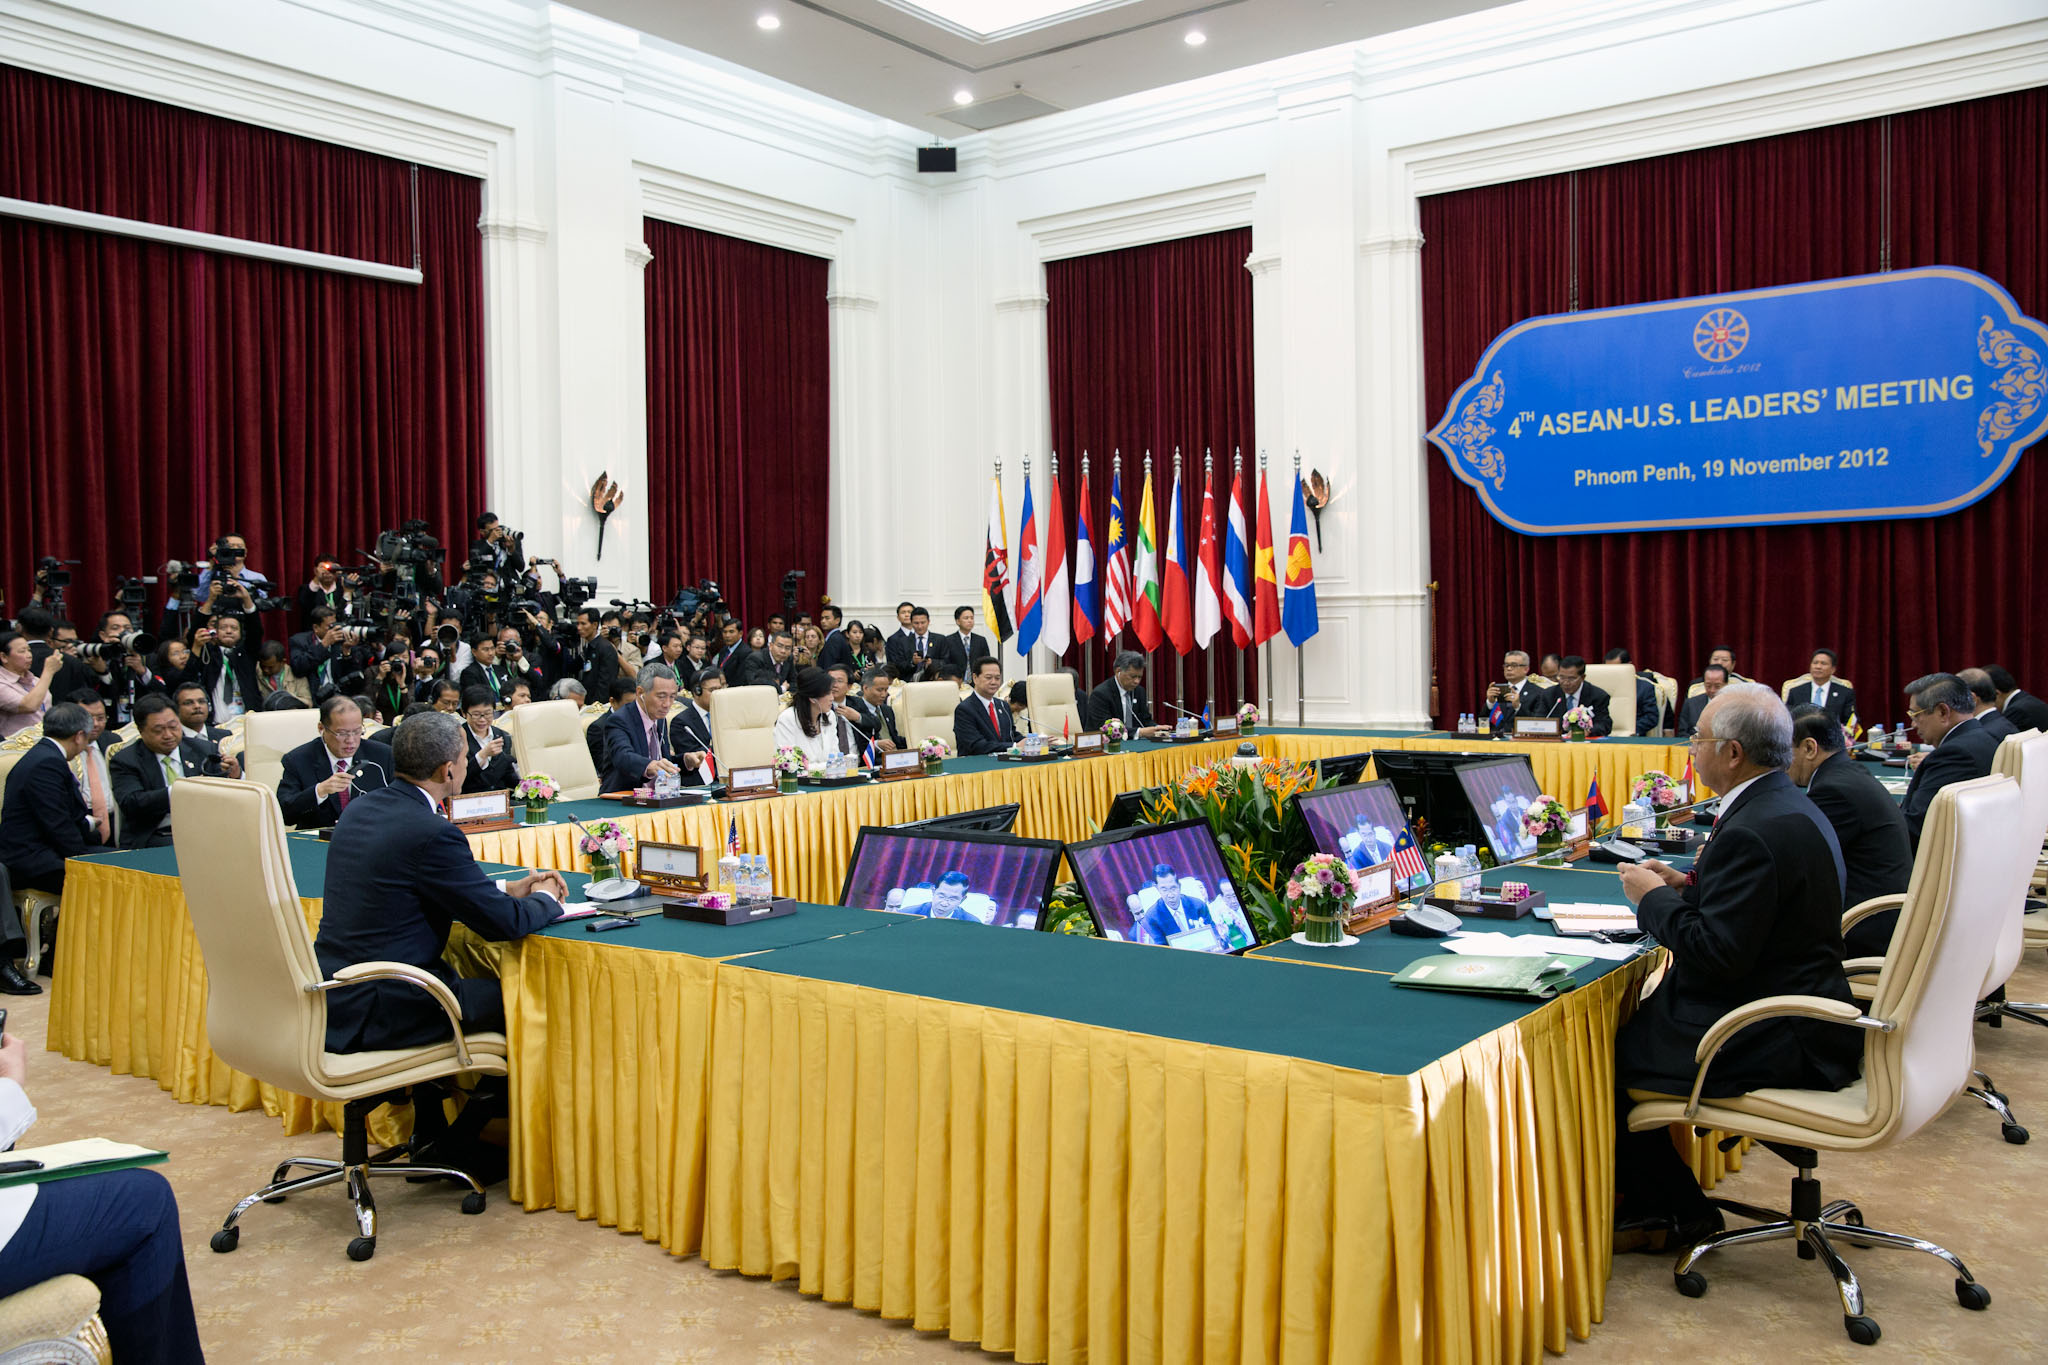 President Barack Obama delivers opening remarks at the U.S. – ASEAN Leaders Meeting